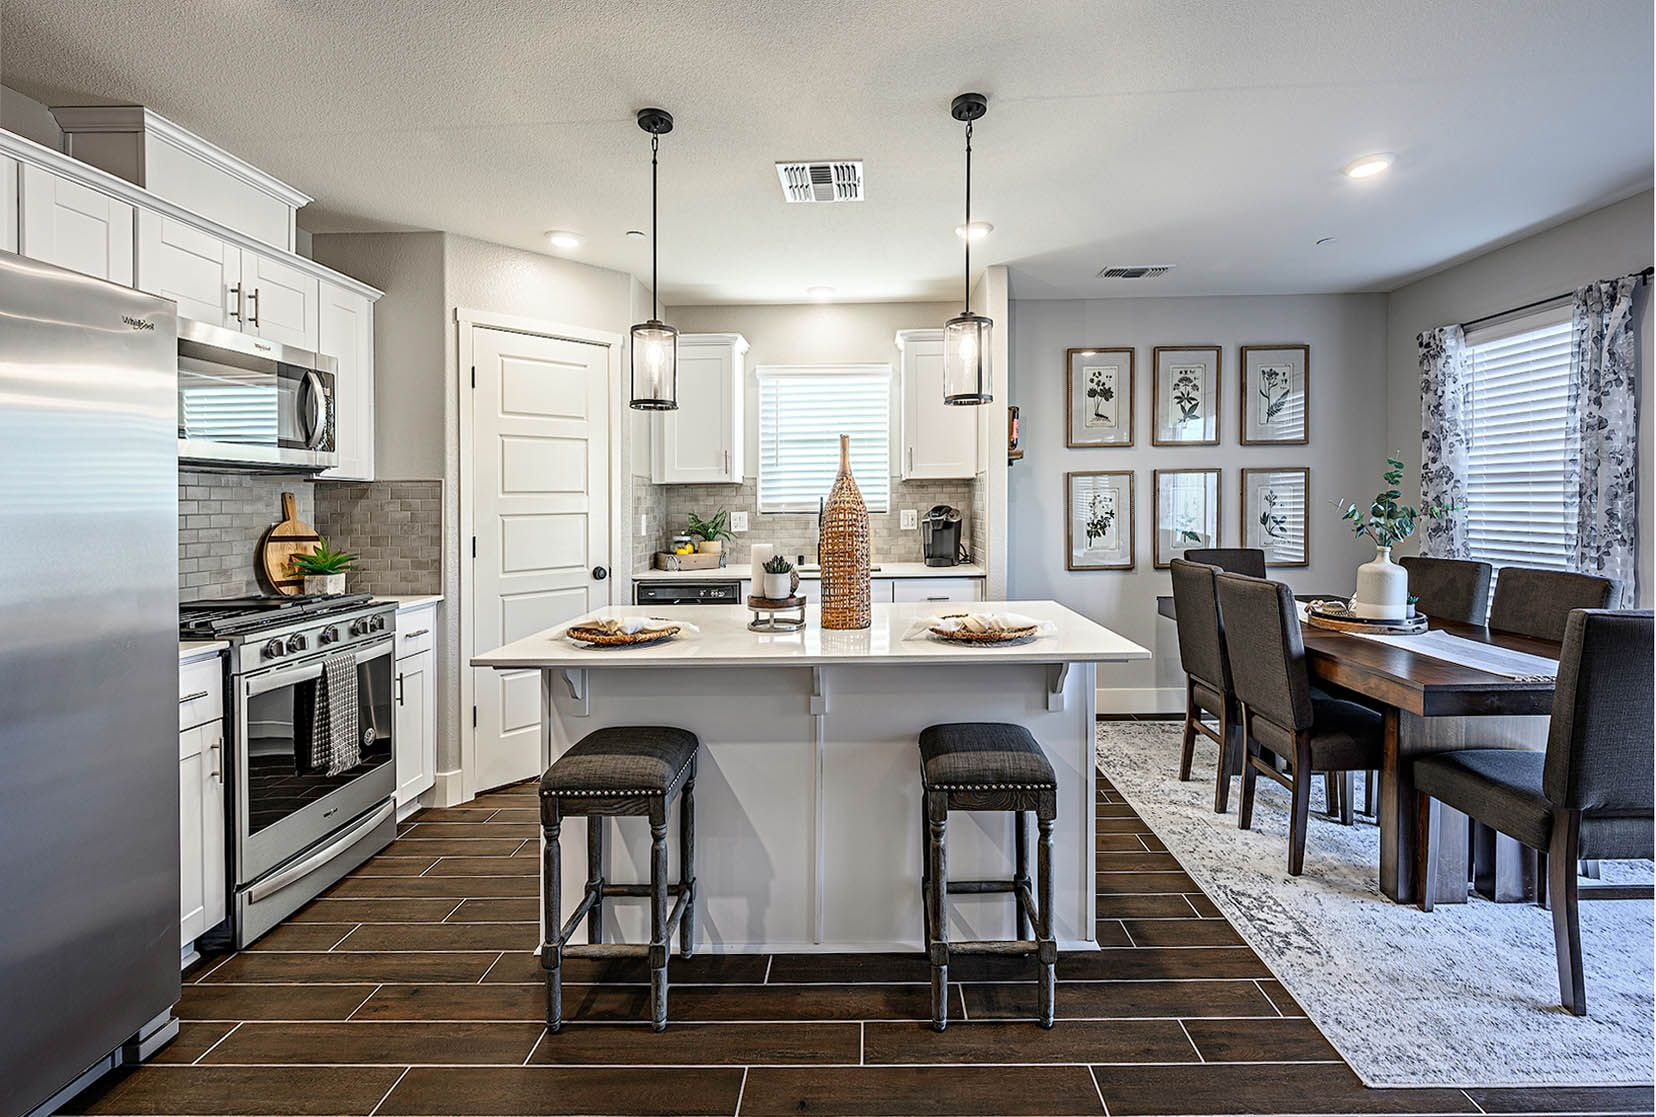 Kitchen featured in the Lark By D.R. Horton in Bakersfield, CA